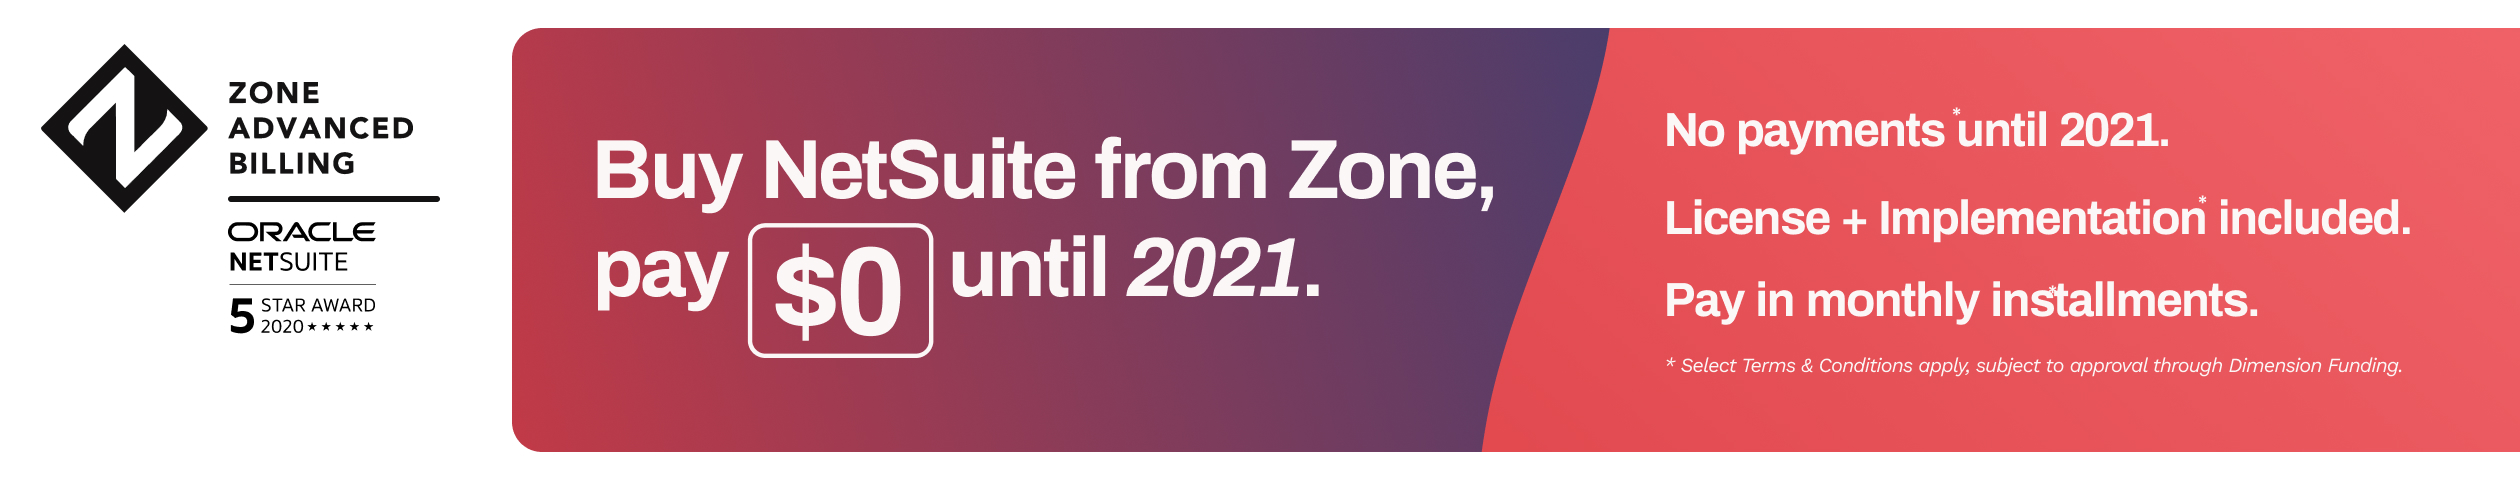 Zone Advanced Billing